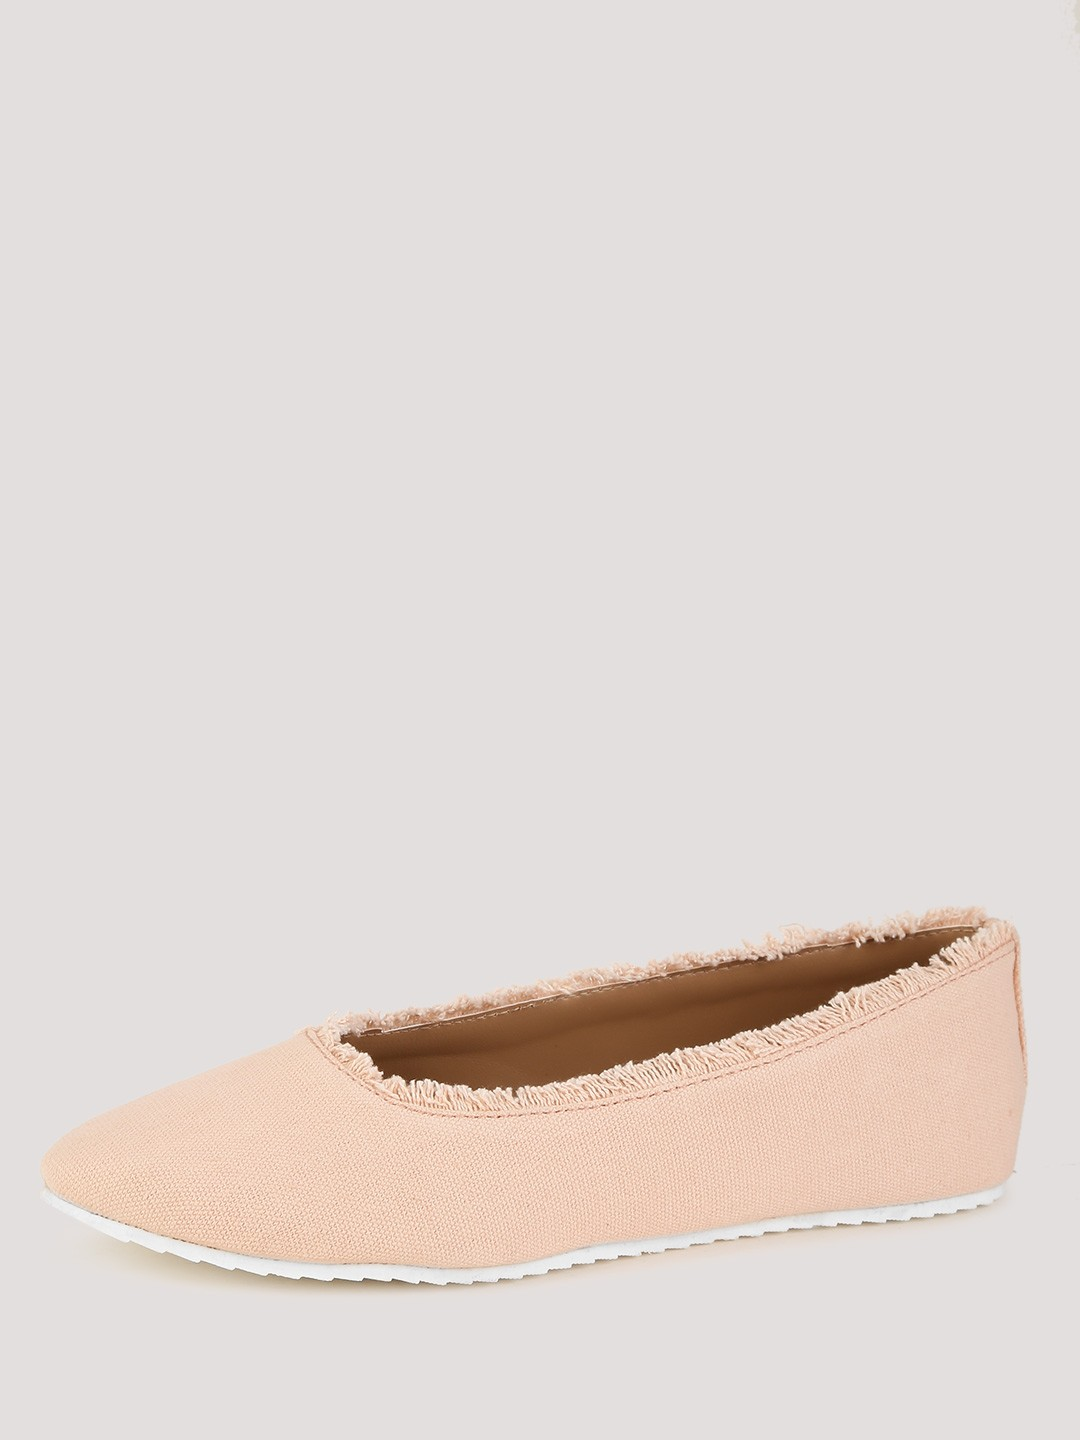 Buy Koovs Nude Frayed Edge Almond Toe Ballerinas For Girls Online In India-7656